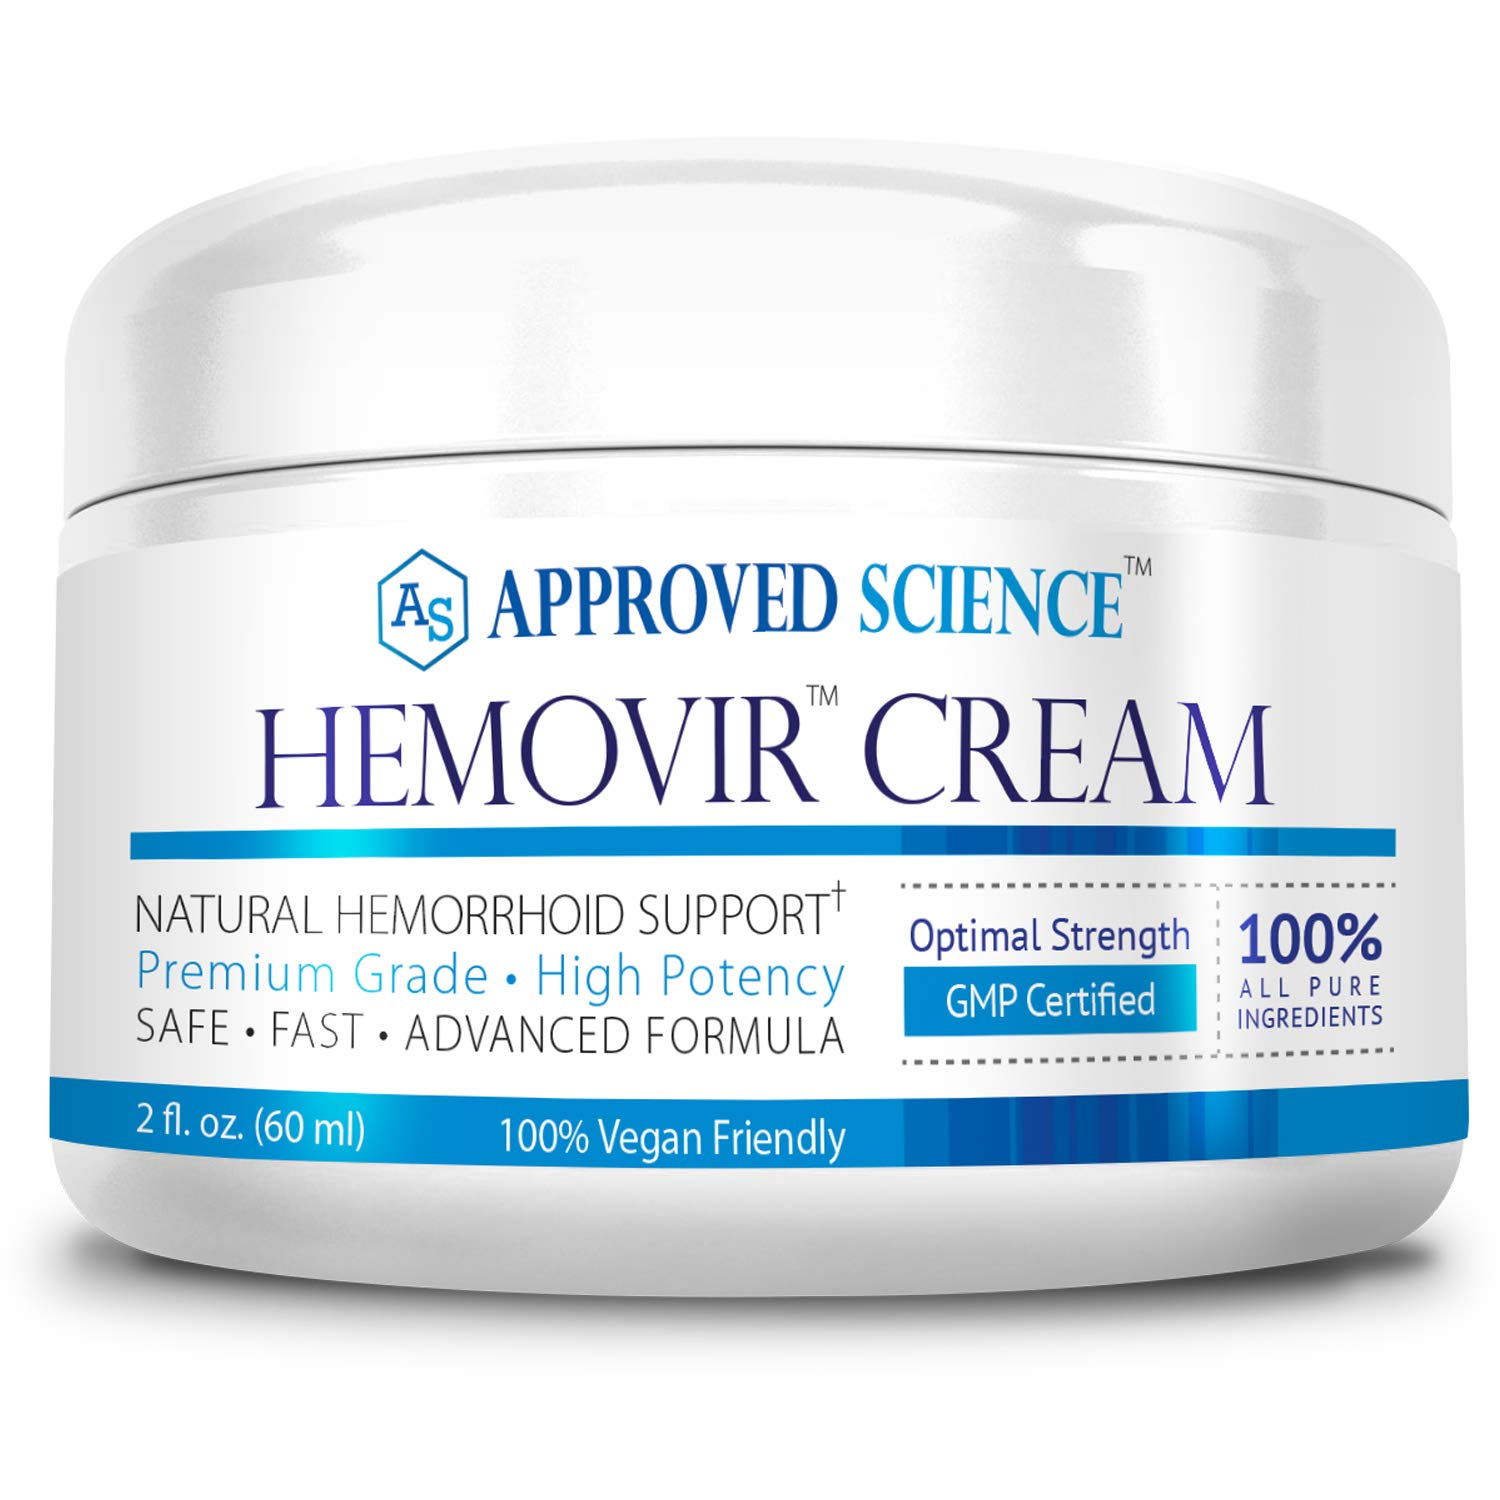 Hemovir - Natural Hemorrhoid Cream - Rapid Healing; Reduce Itching, Irritation, Bleeding & Burning ! 100% Pure! - 60 mL Container of Hemorrhoid Cream - 60 Days Money Back Guarantee by Approved Science